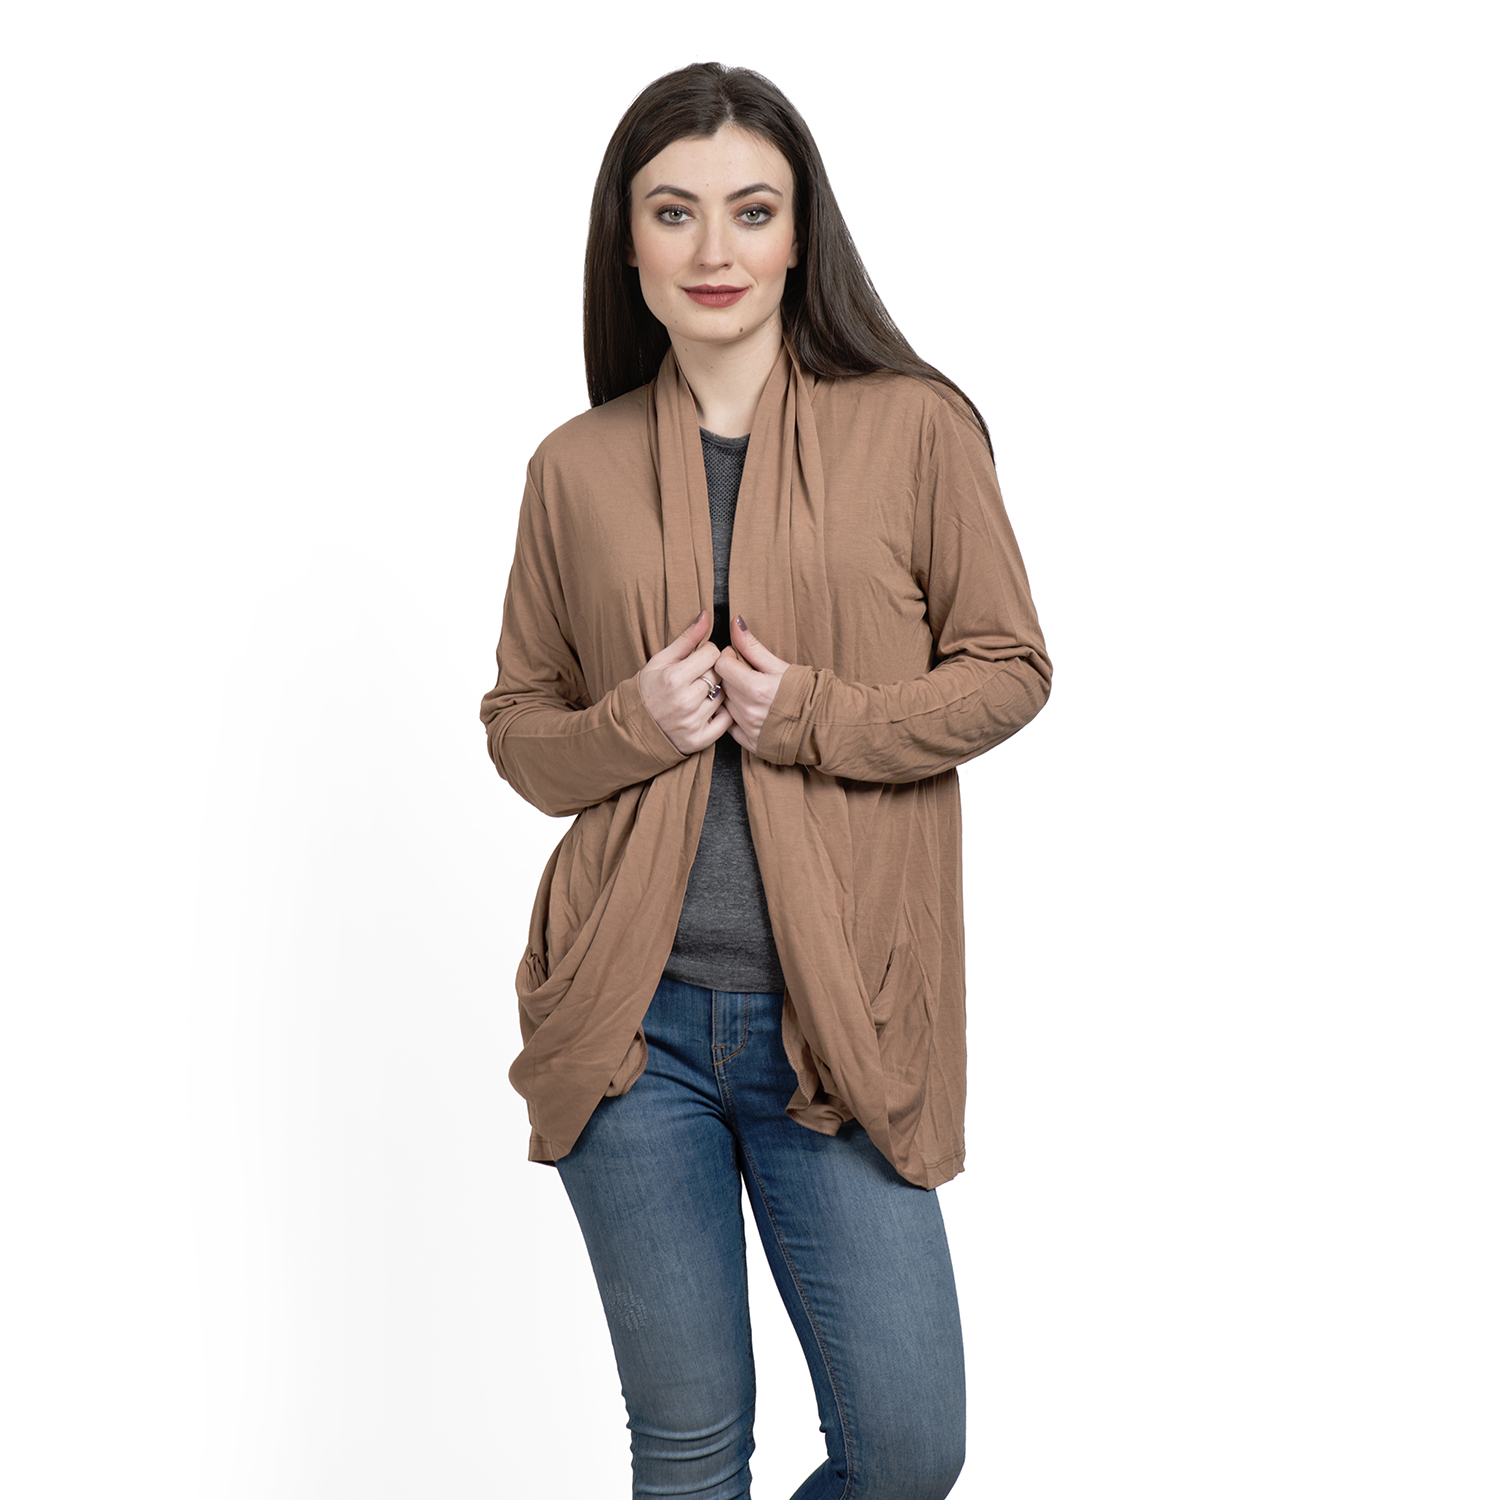 Khaki 100% Viscose Waterfall Cardigan | cardigans | fashion ...